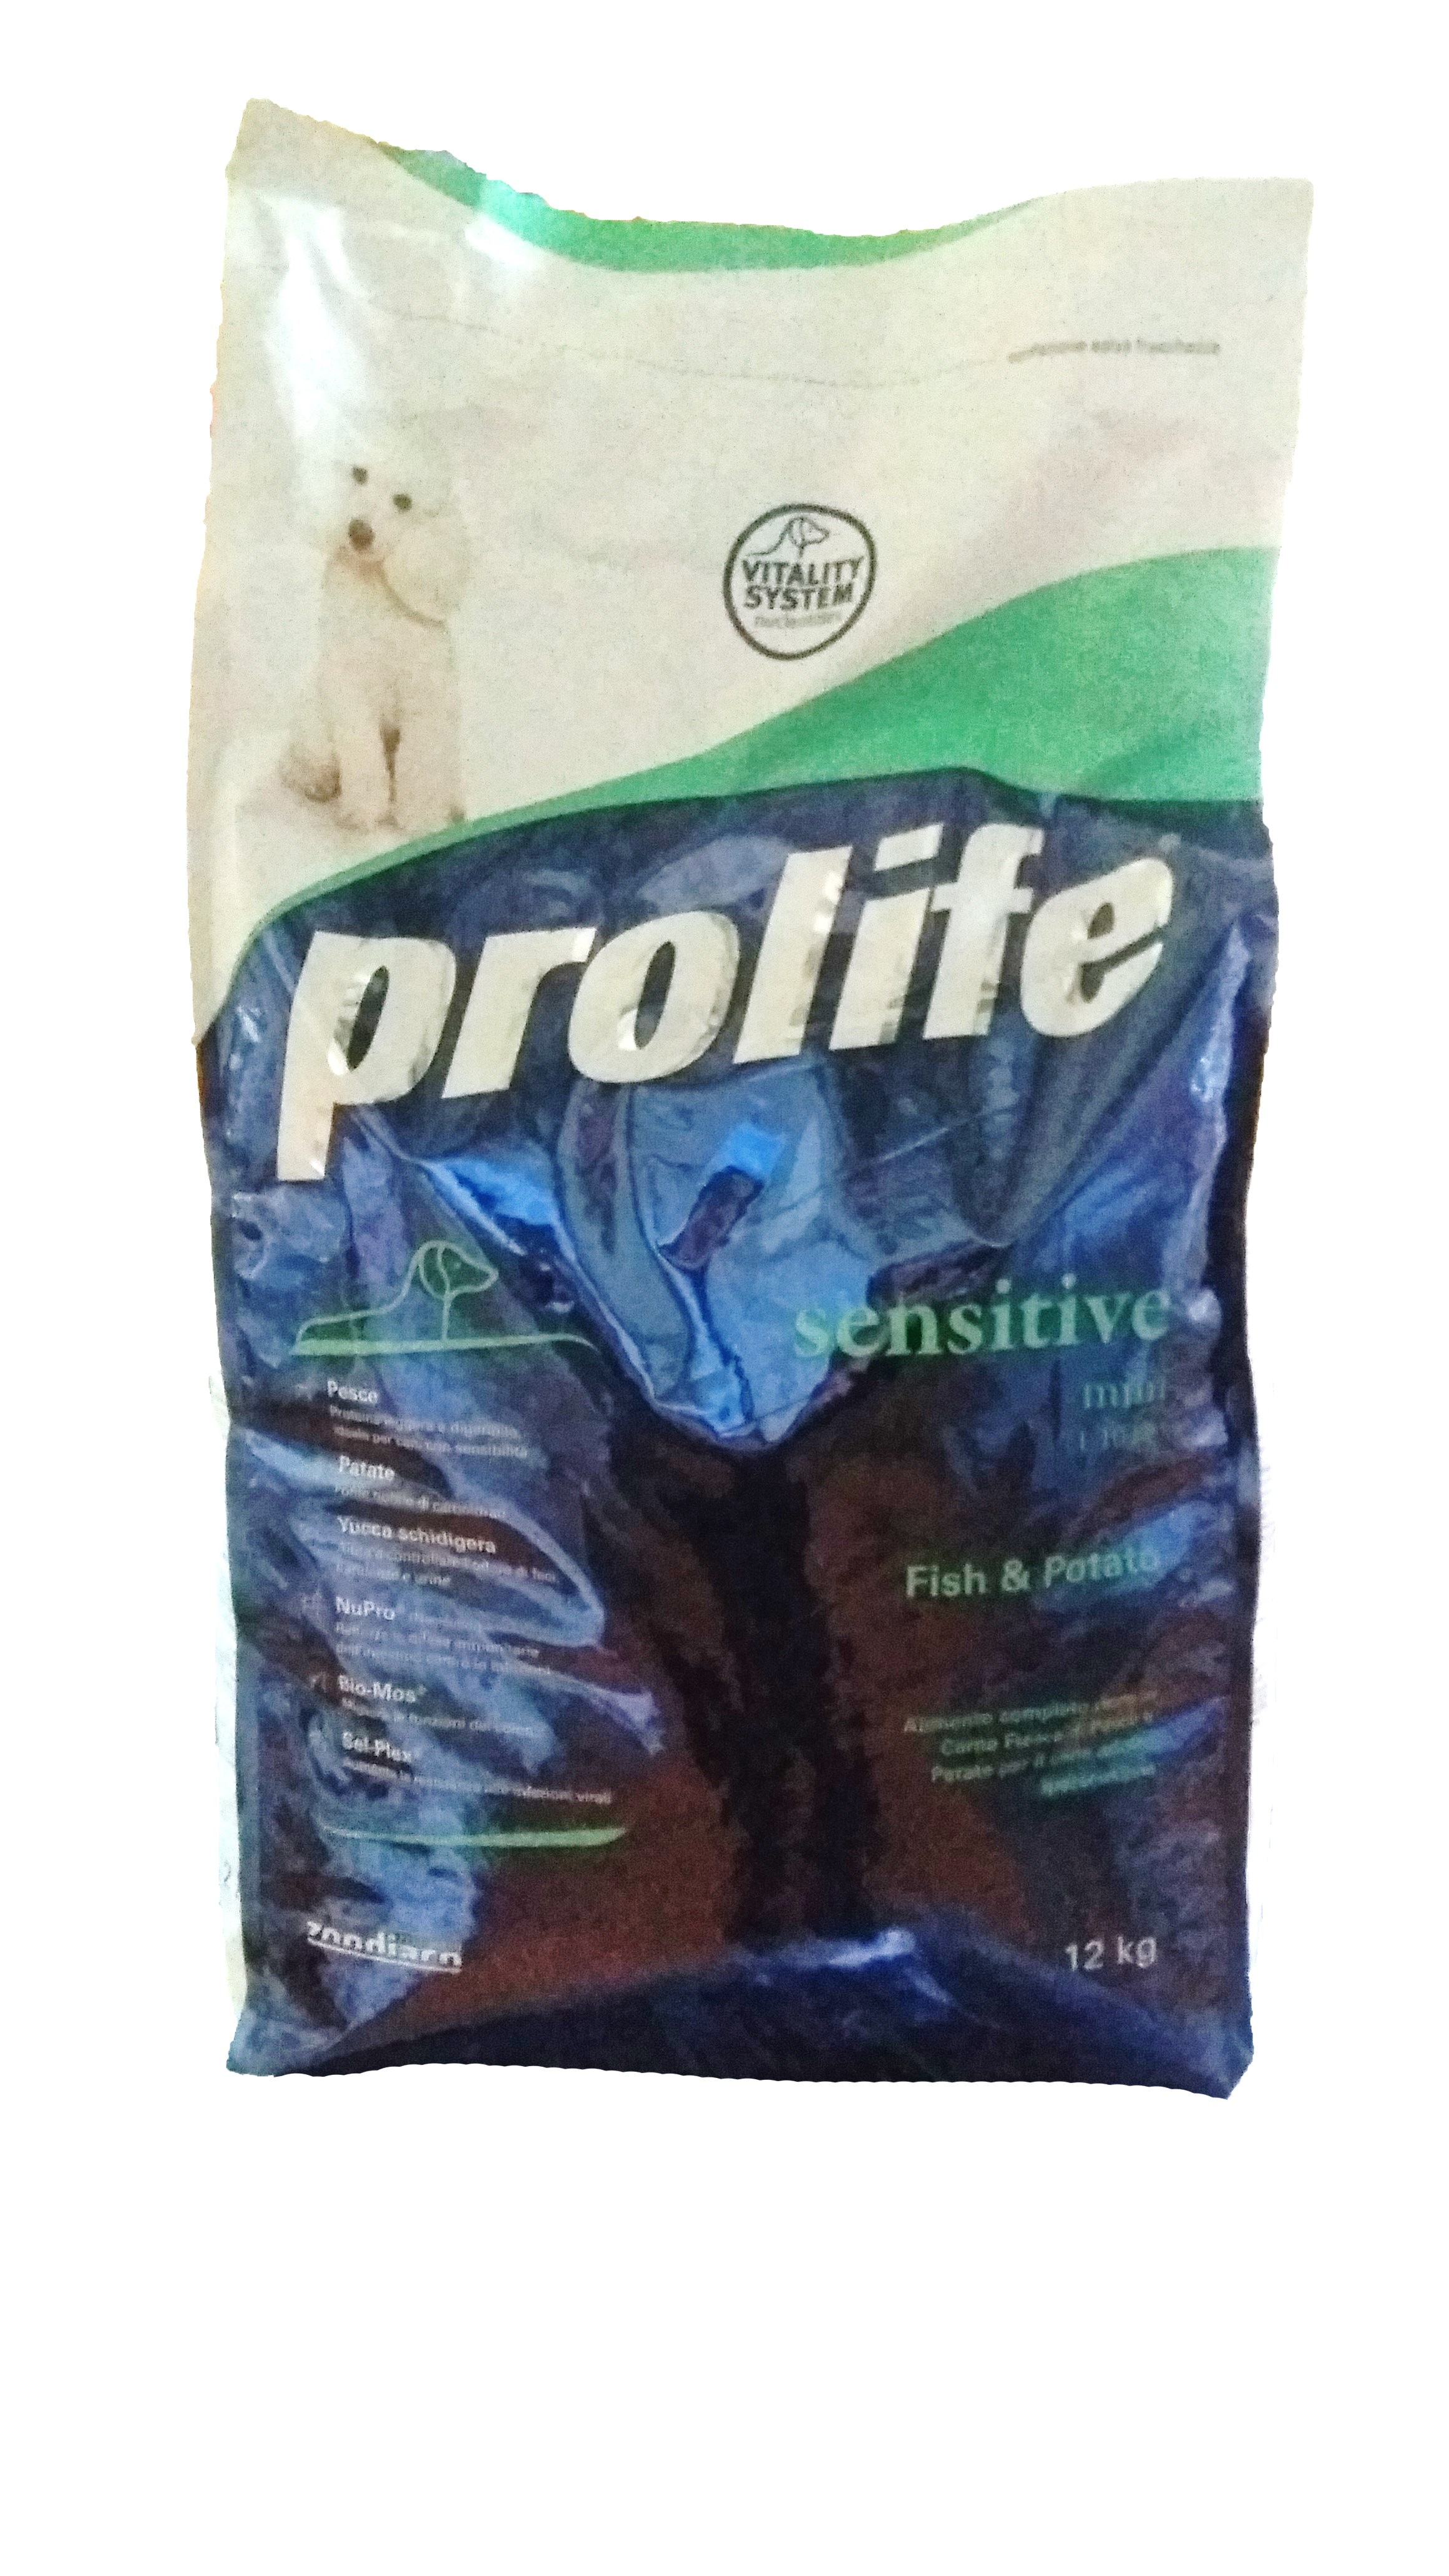 Prolife Dog Sensitive M-L GRAIN-FREE 12kg, Fish&Potato (Made in